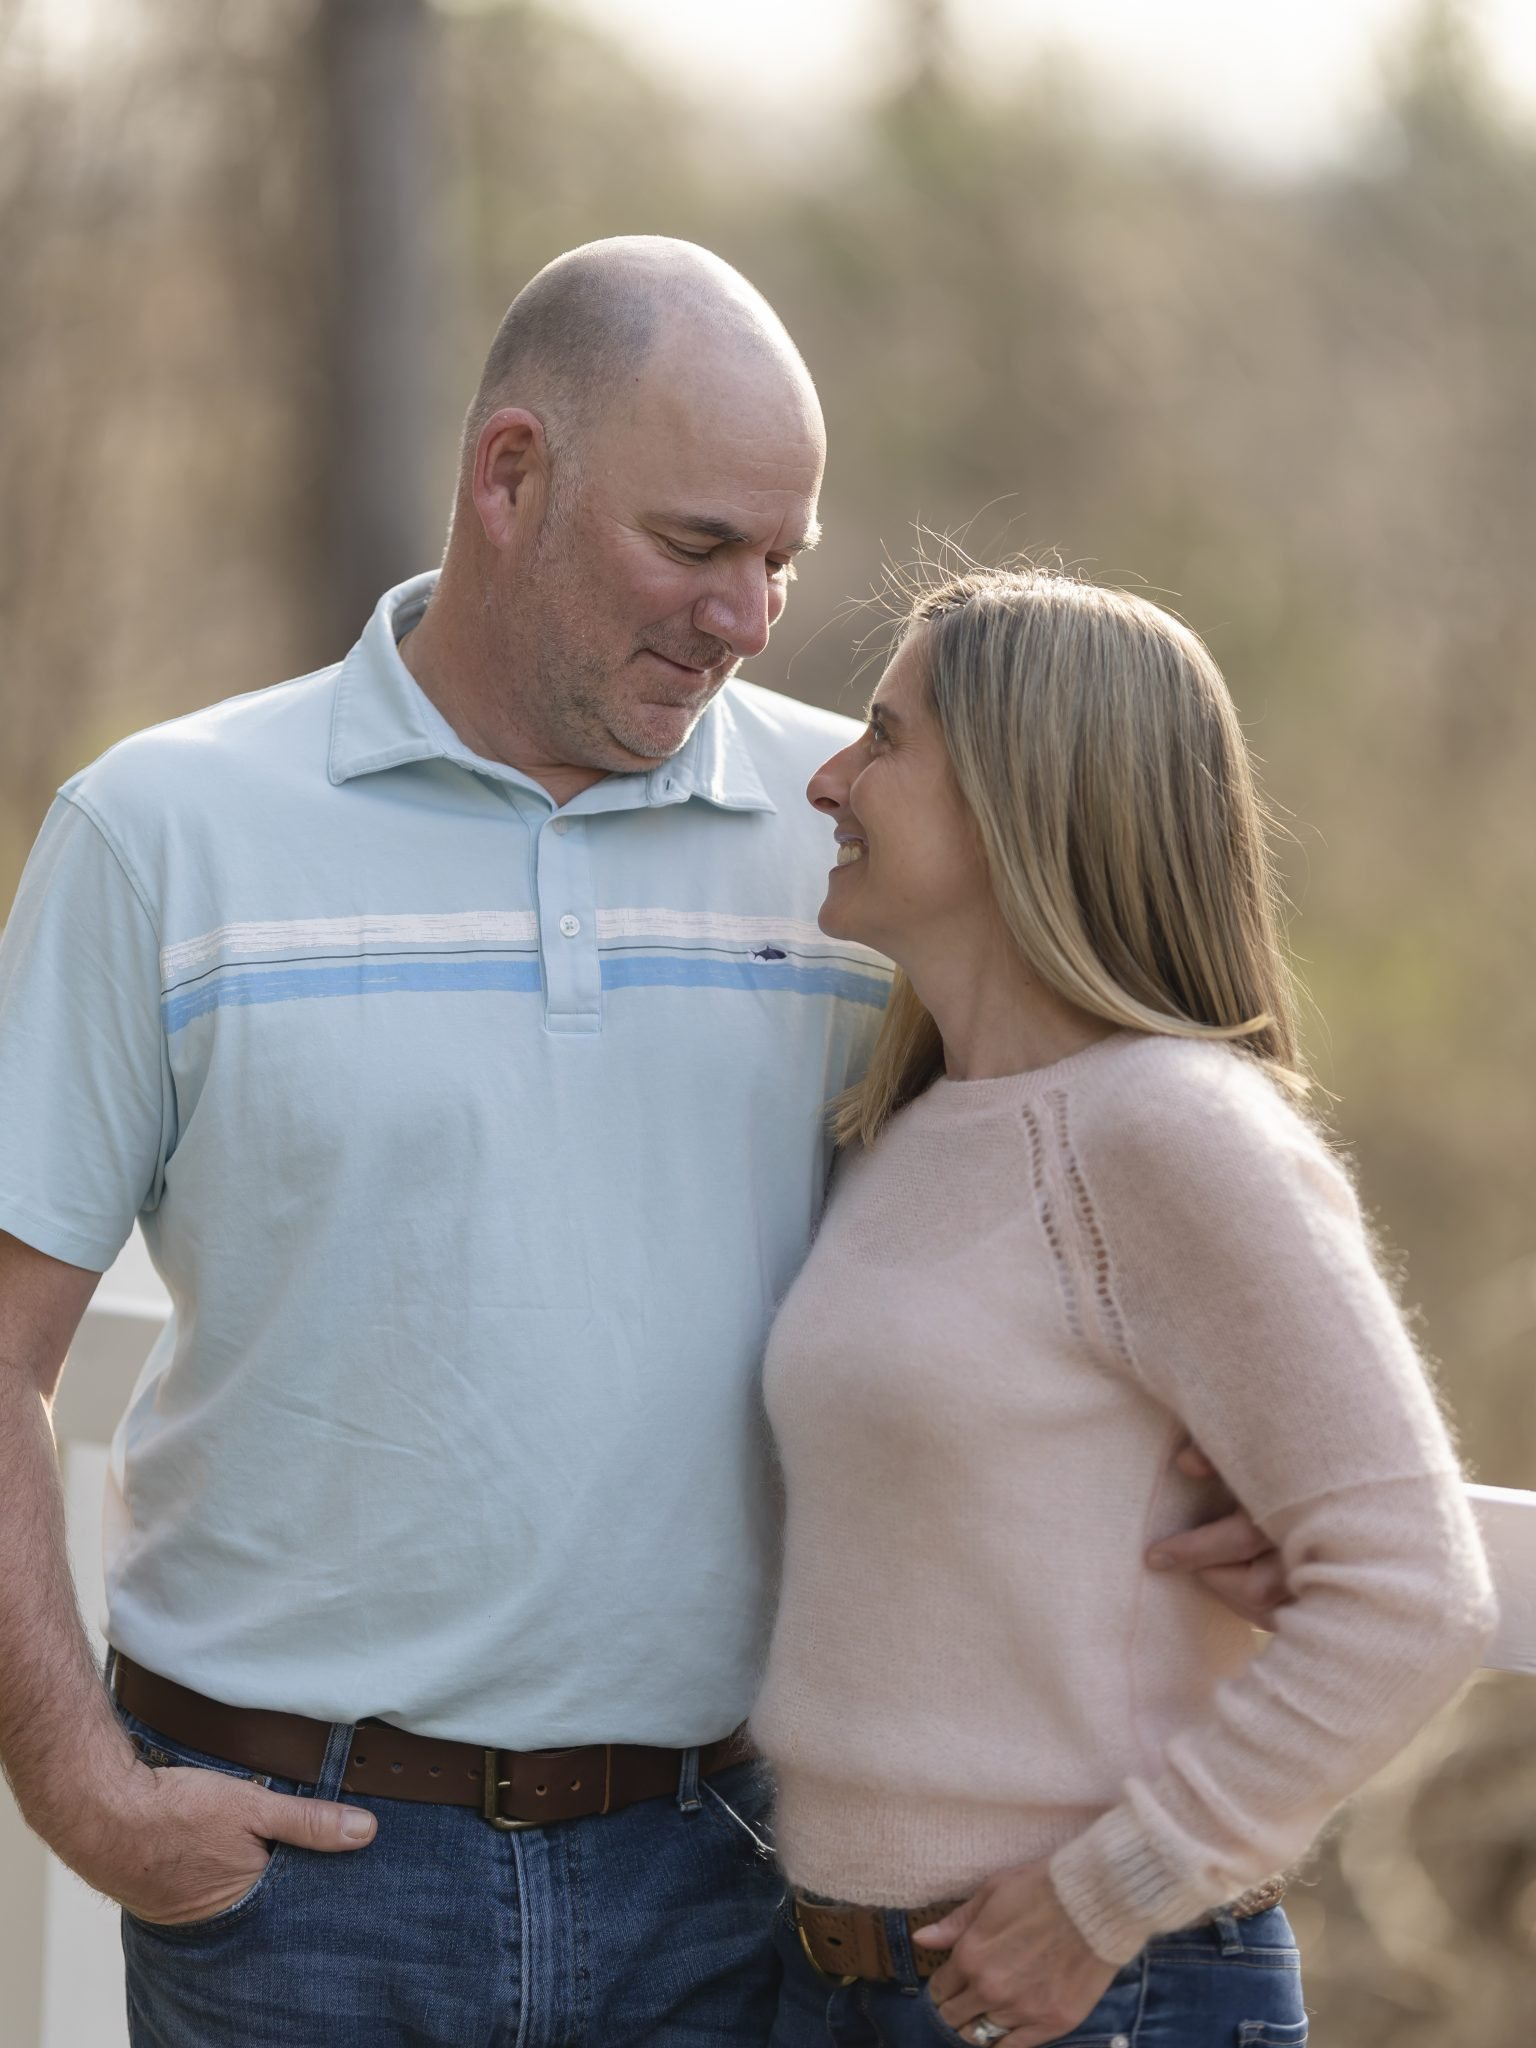 Husband and wife in pink sweater, blue polo and jeans, natural lighting, natural setting, woods, Professional portraits, couples portraiture, Keuka Lake, Fingerlakes Region, Vacation photos, Fingerlakes vacation, Penn Yan, New York, family photoshoot, family pictures, Husband and wife pictures, happiness, love